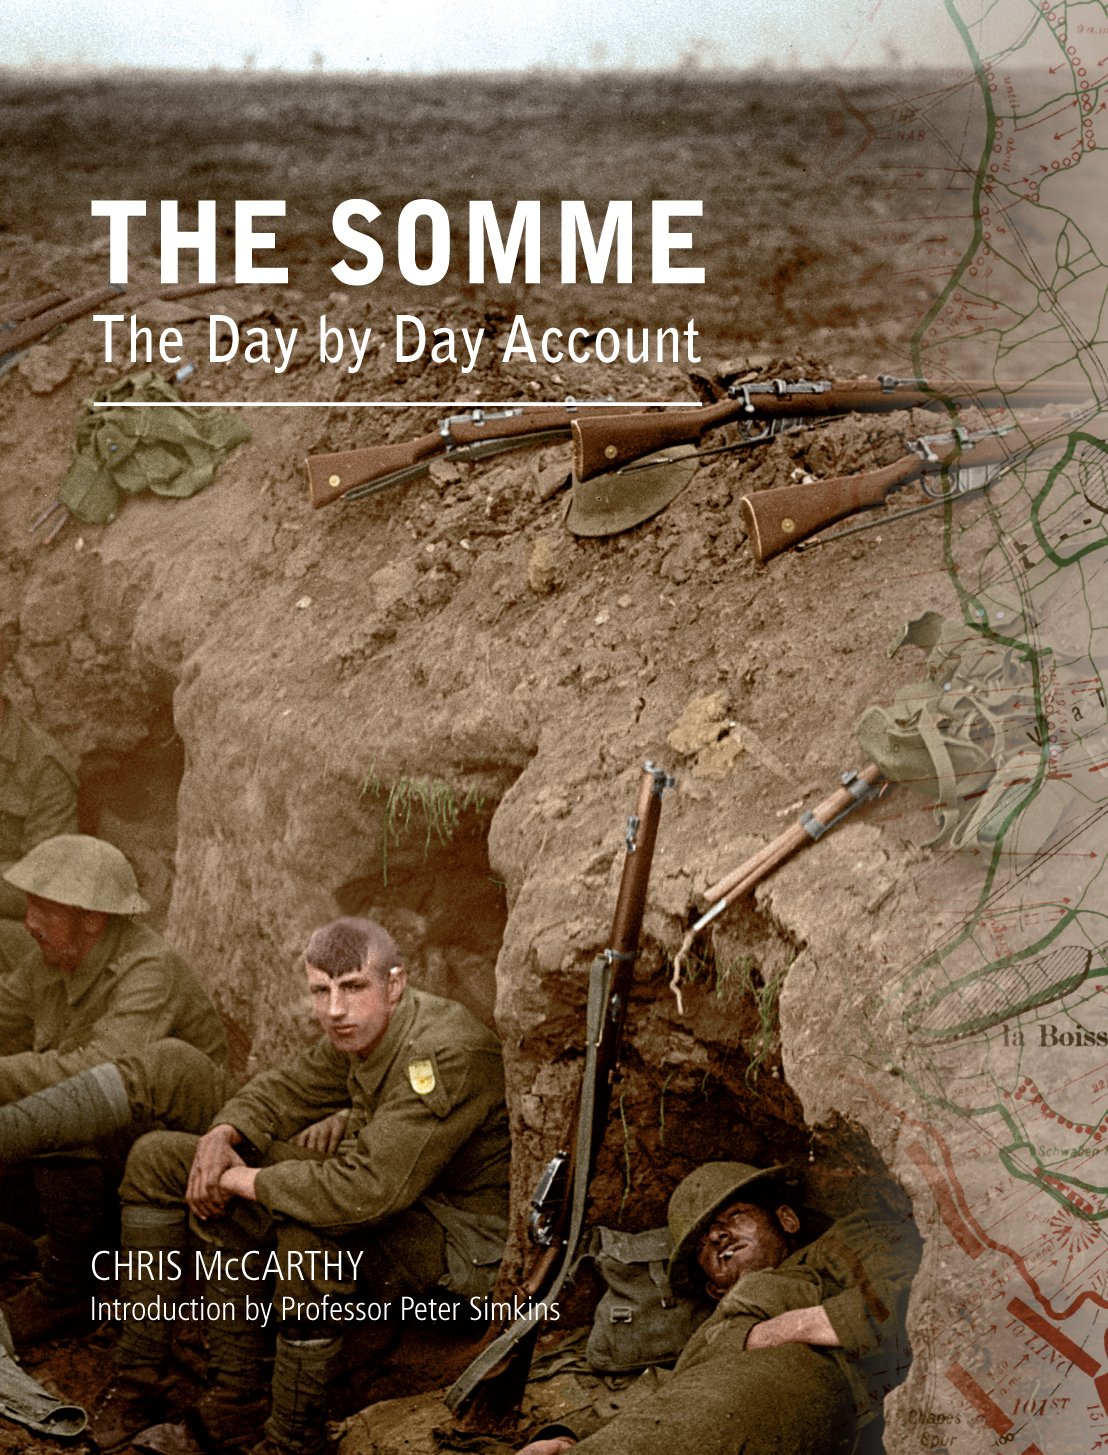 The Somme: The Day-by-Day Account